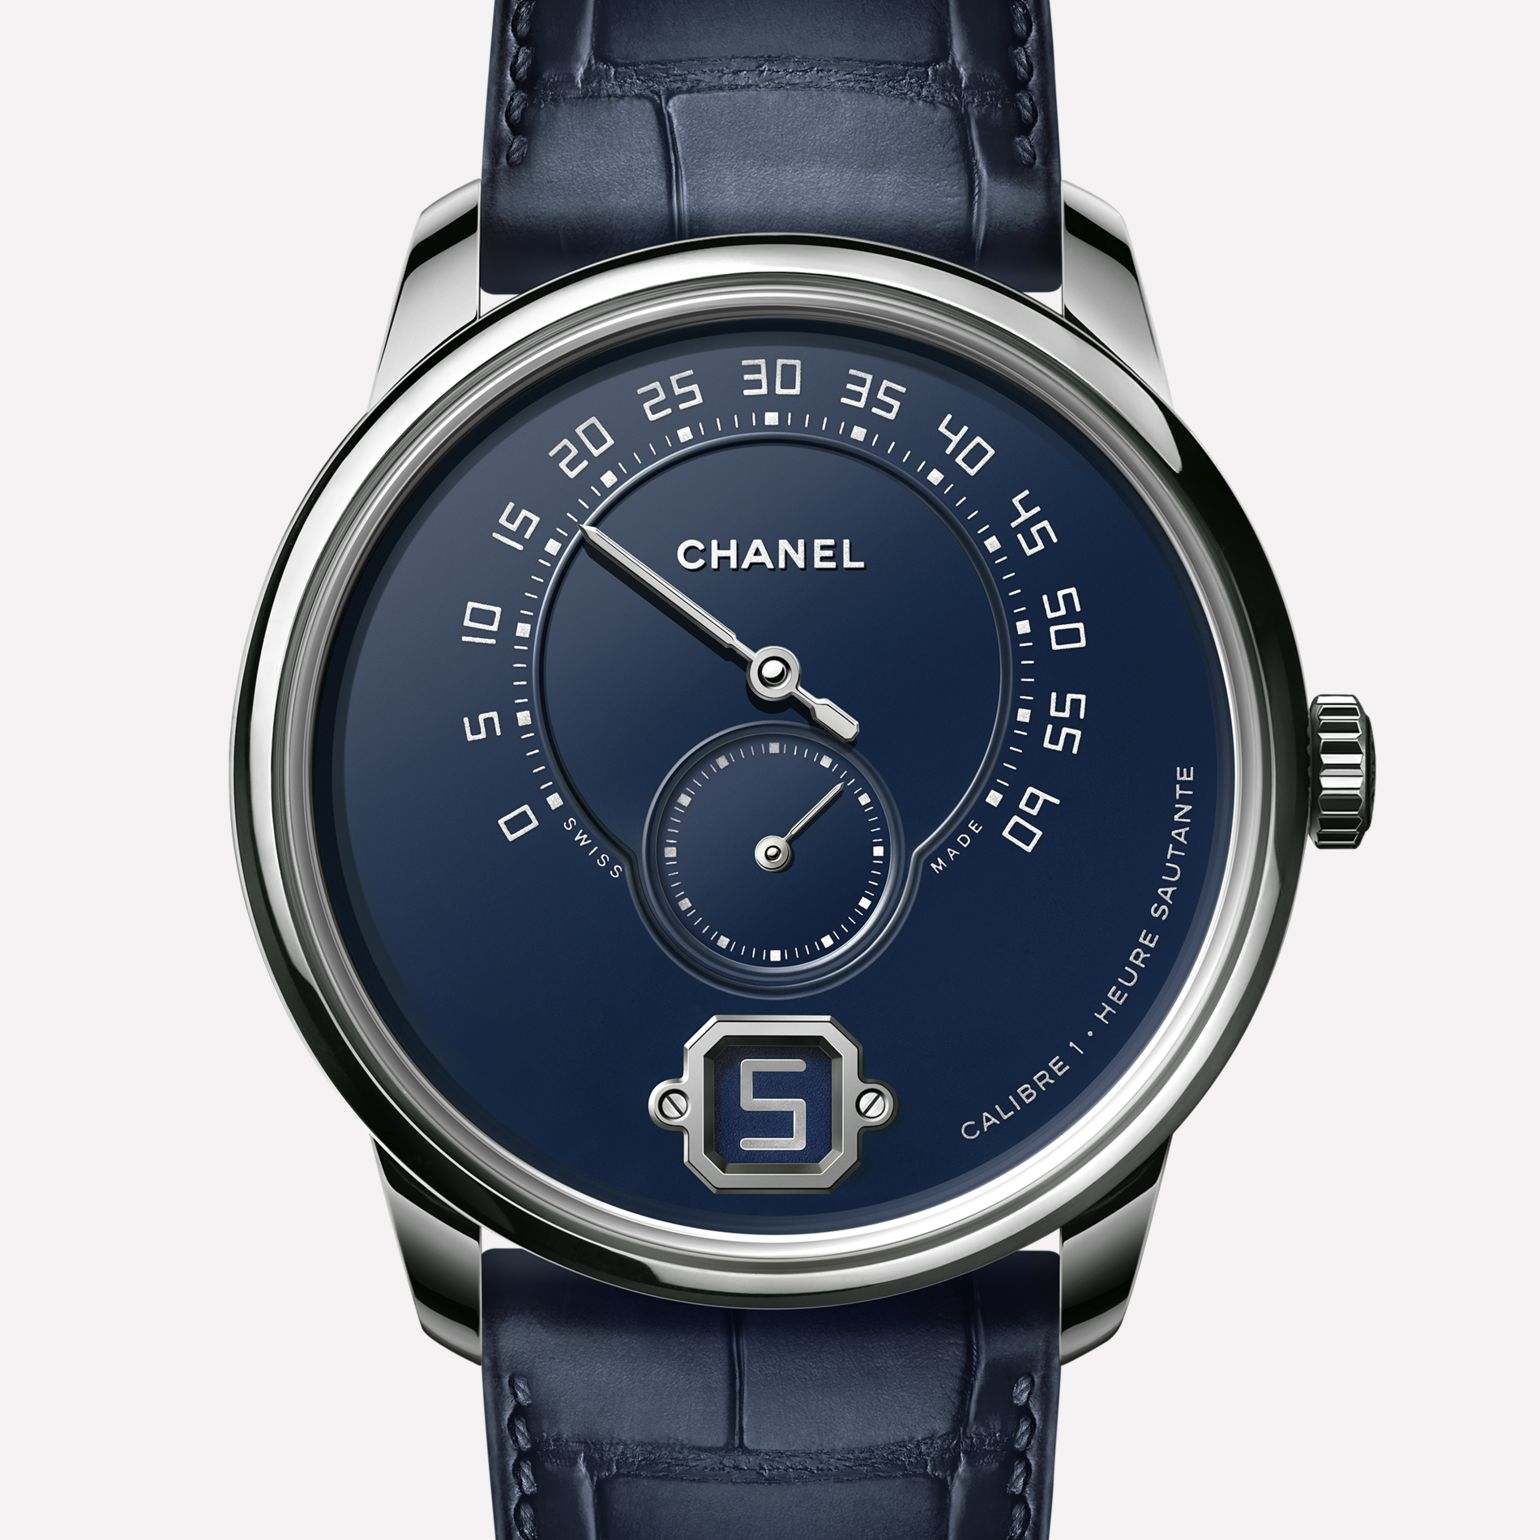 Monsieur Watch Platinum, blue « Grand Feu » enamel dial with jumping hour, retrograde minute indication at 240° and small second counter